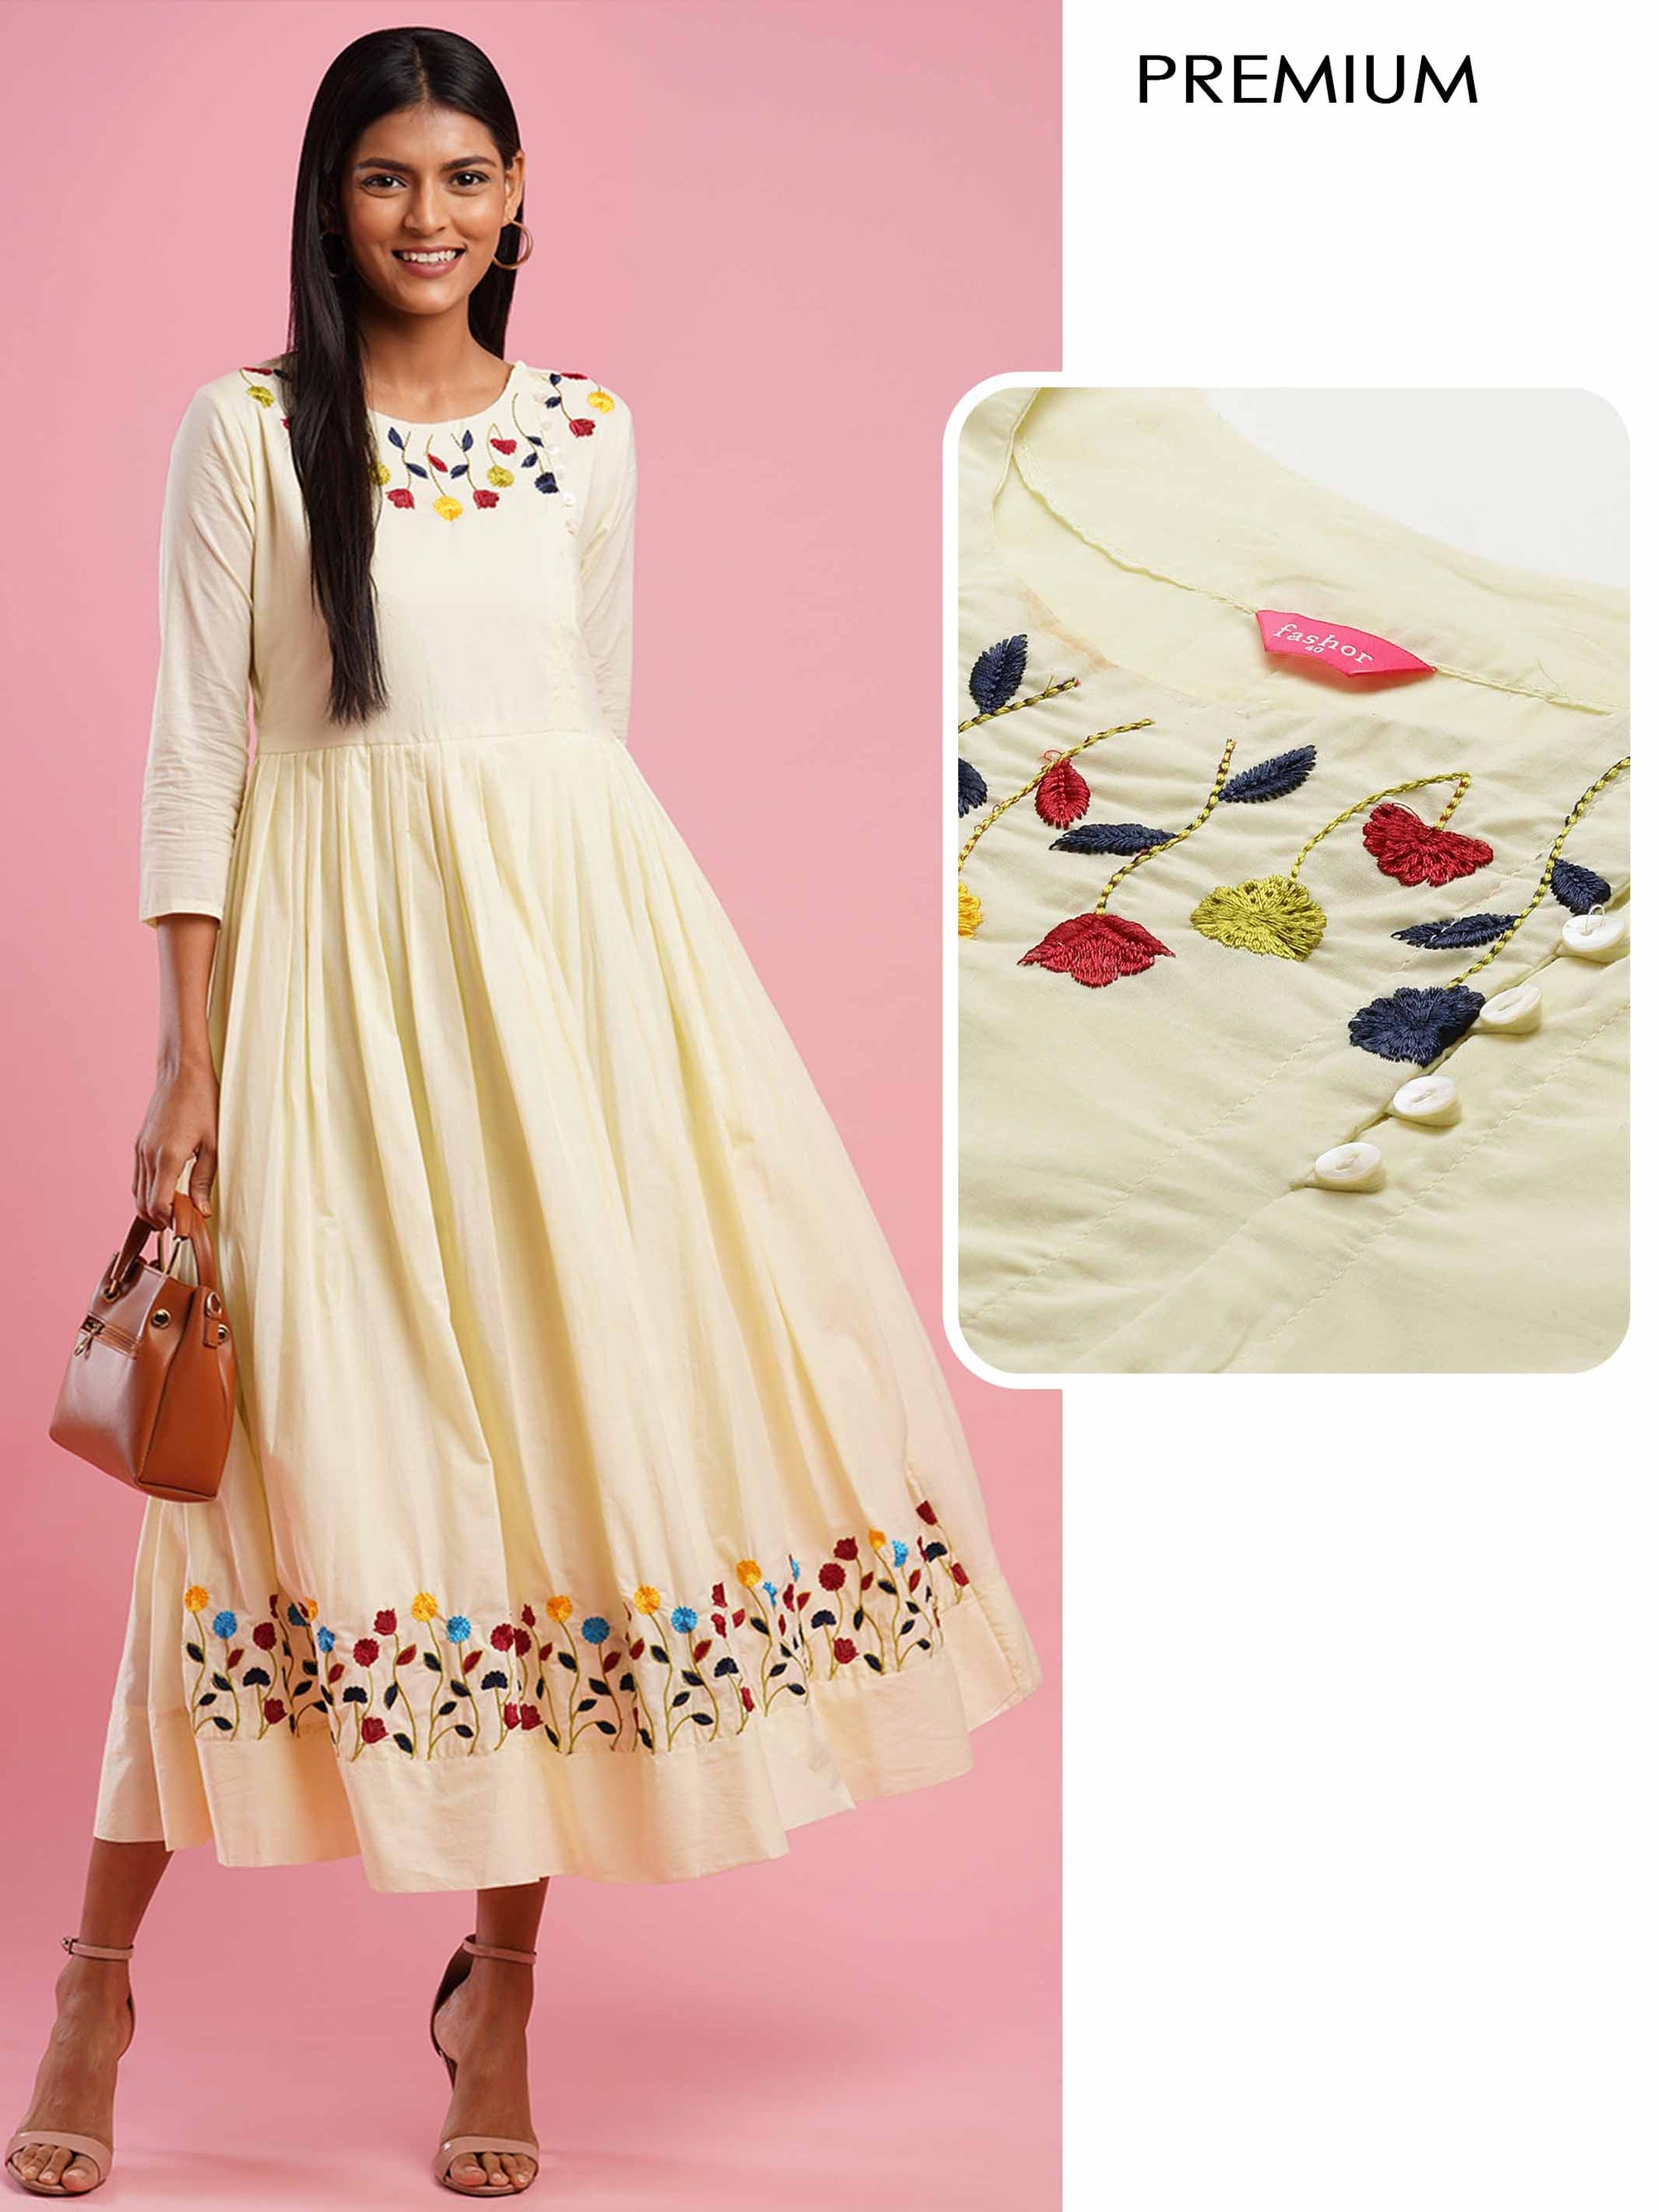 Floral Embroidered Pleated Flare Maxi Dress - Light Yellow